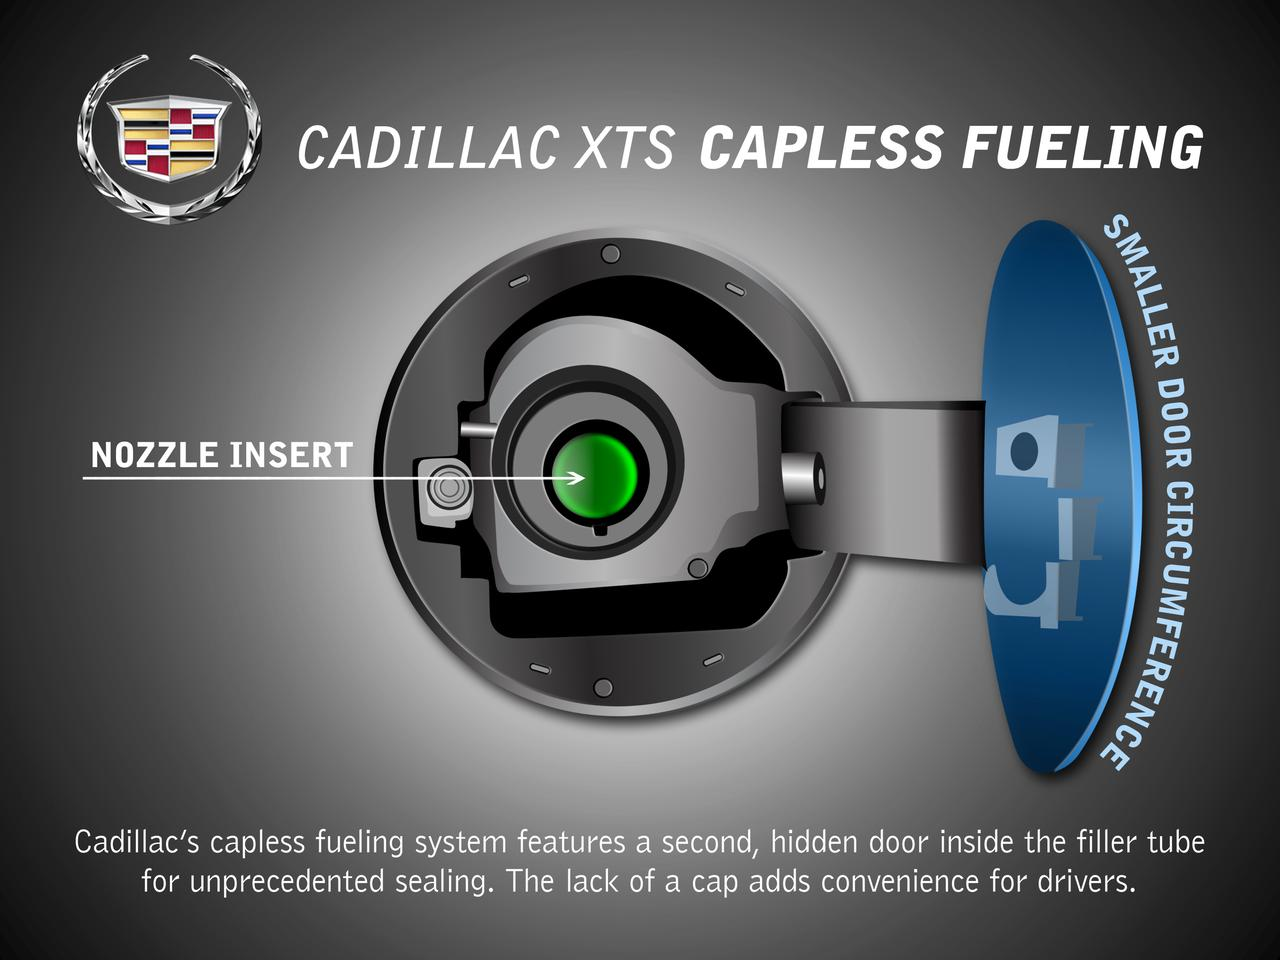 The capless fuel system is another small convenience that Cadillac brings to the 2013 XTS (Photo: General Motors)